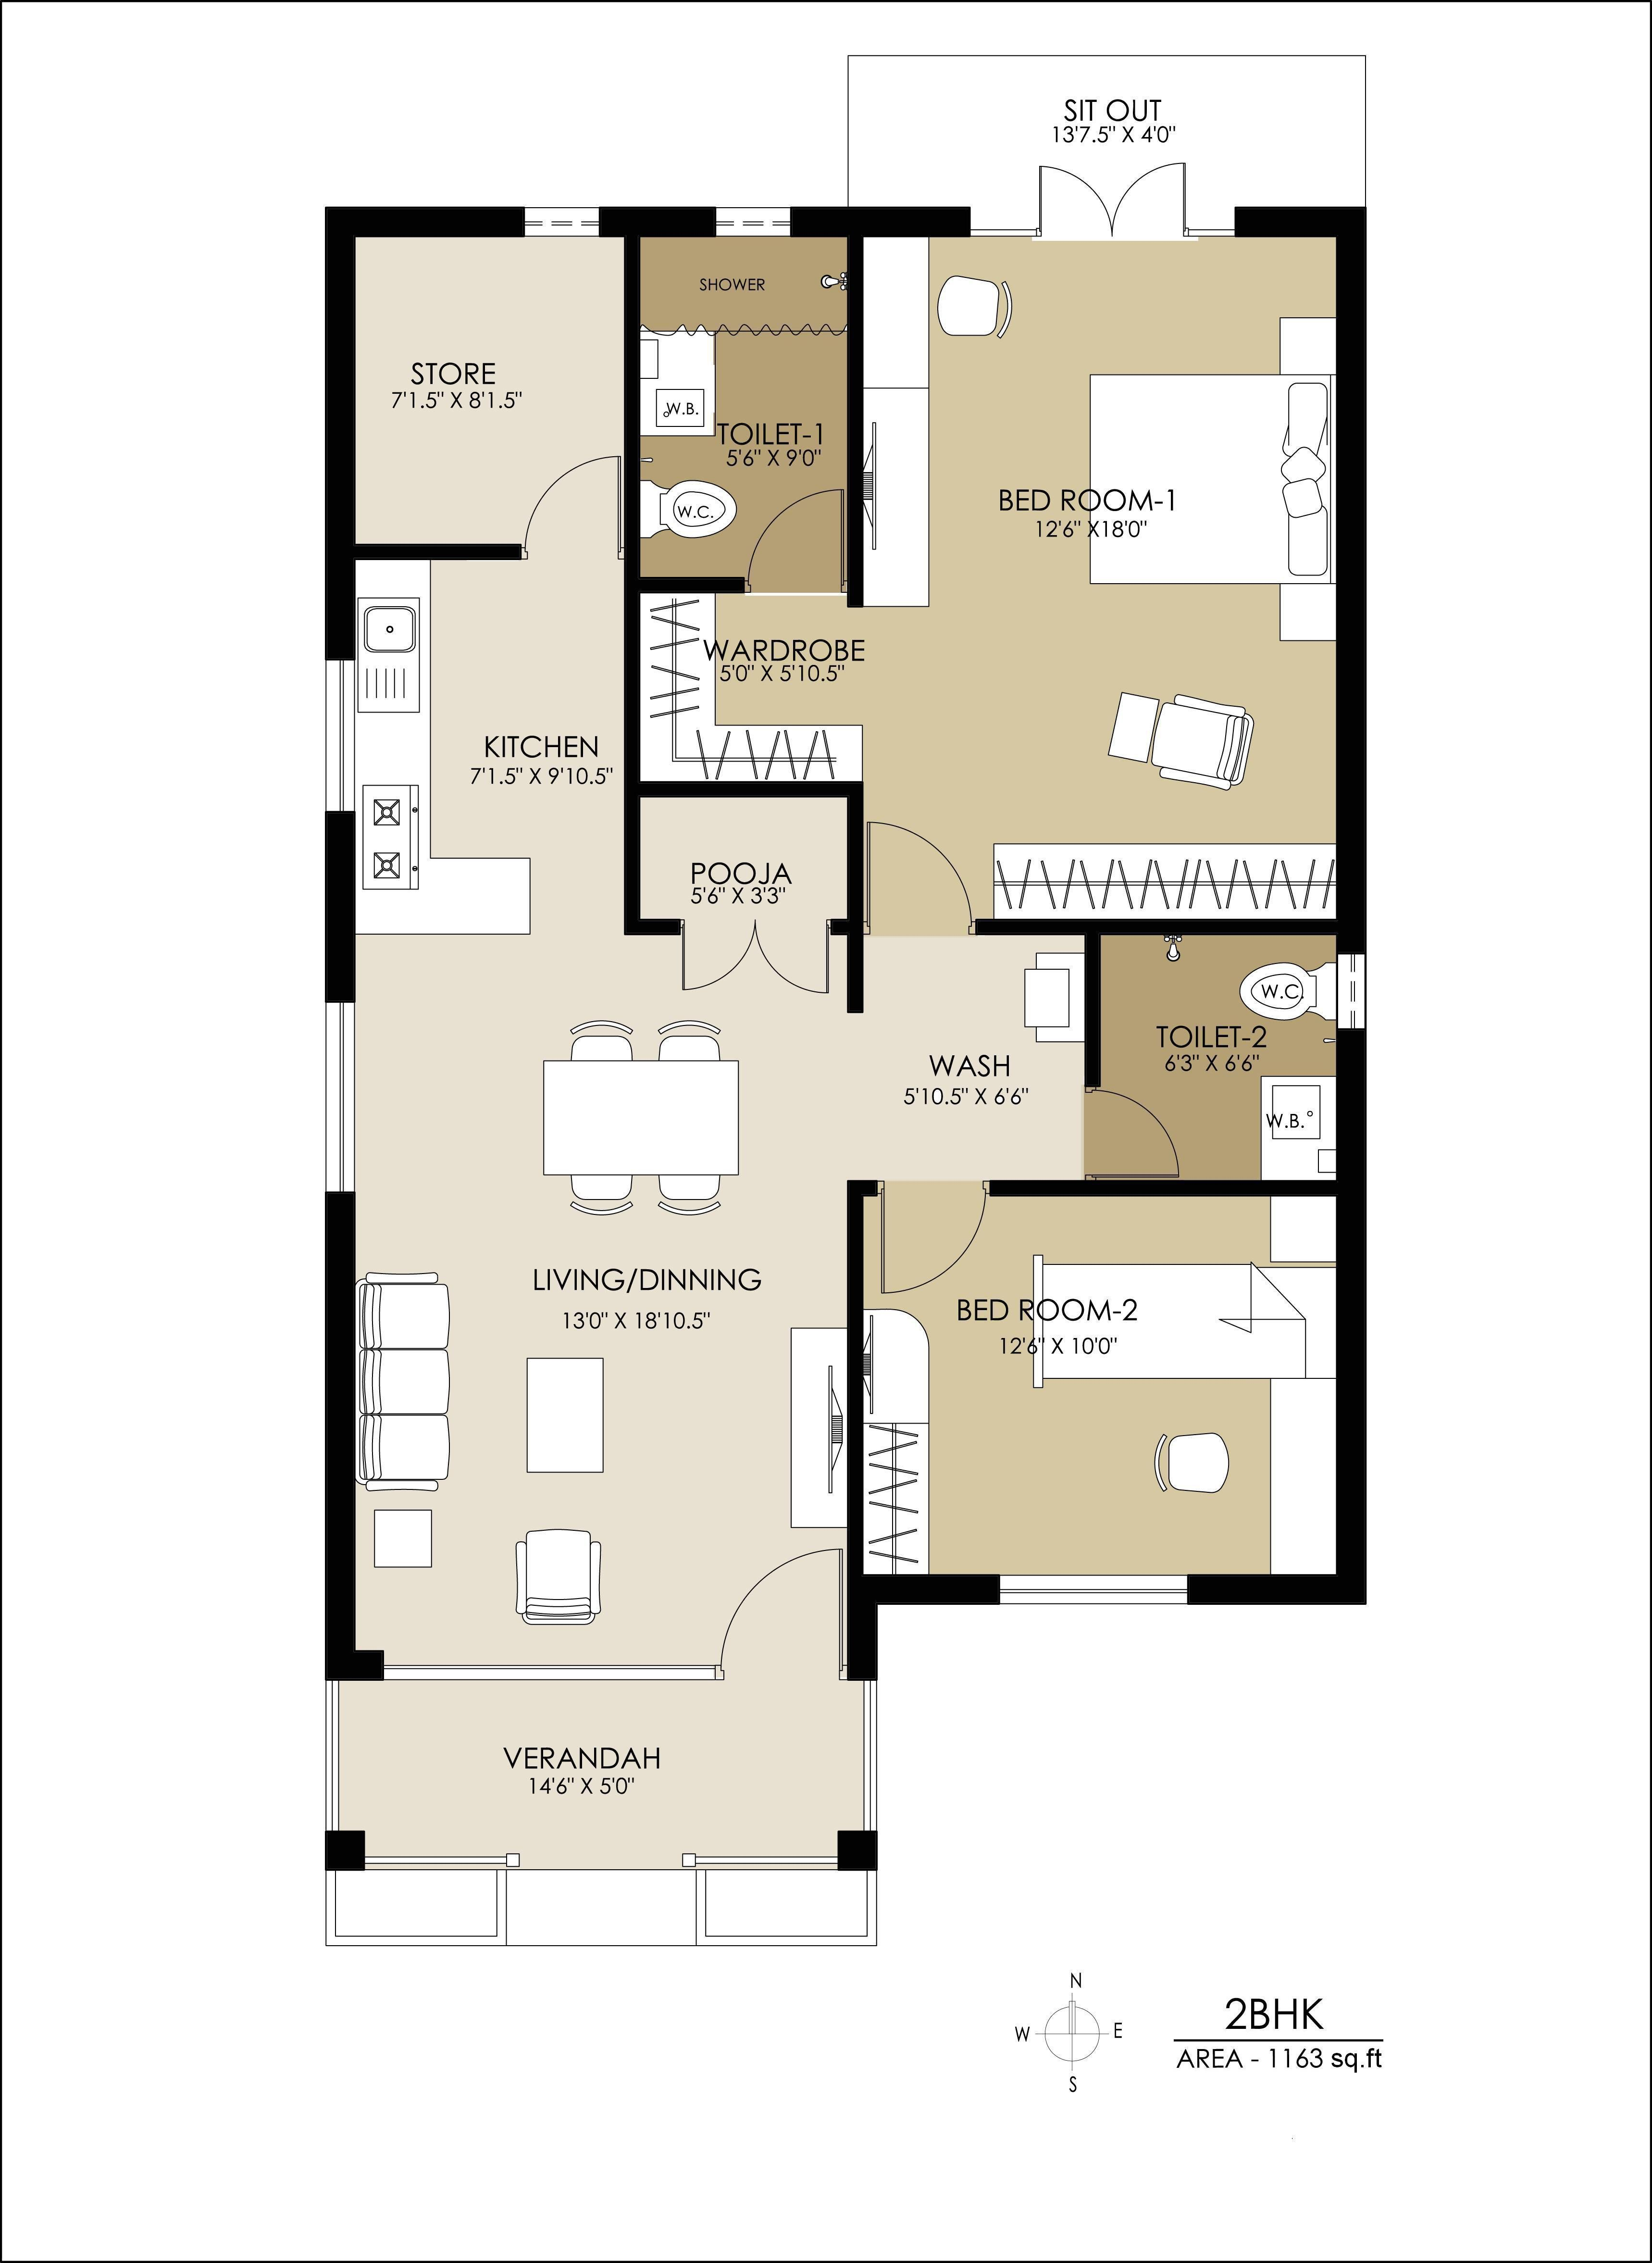 3 Bhk House Plans Indian Style House plans